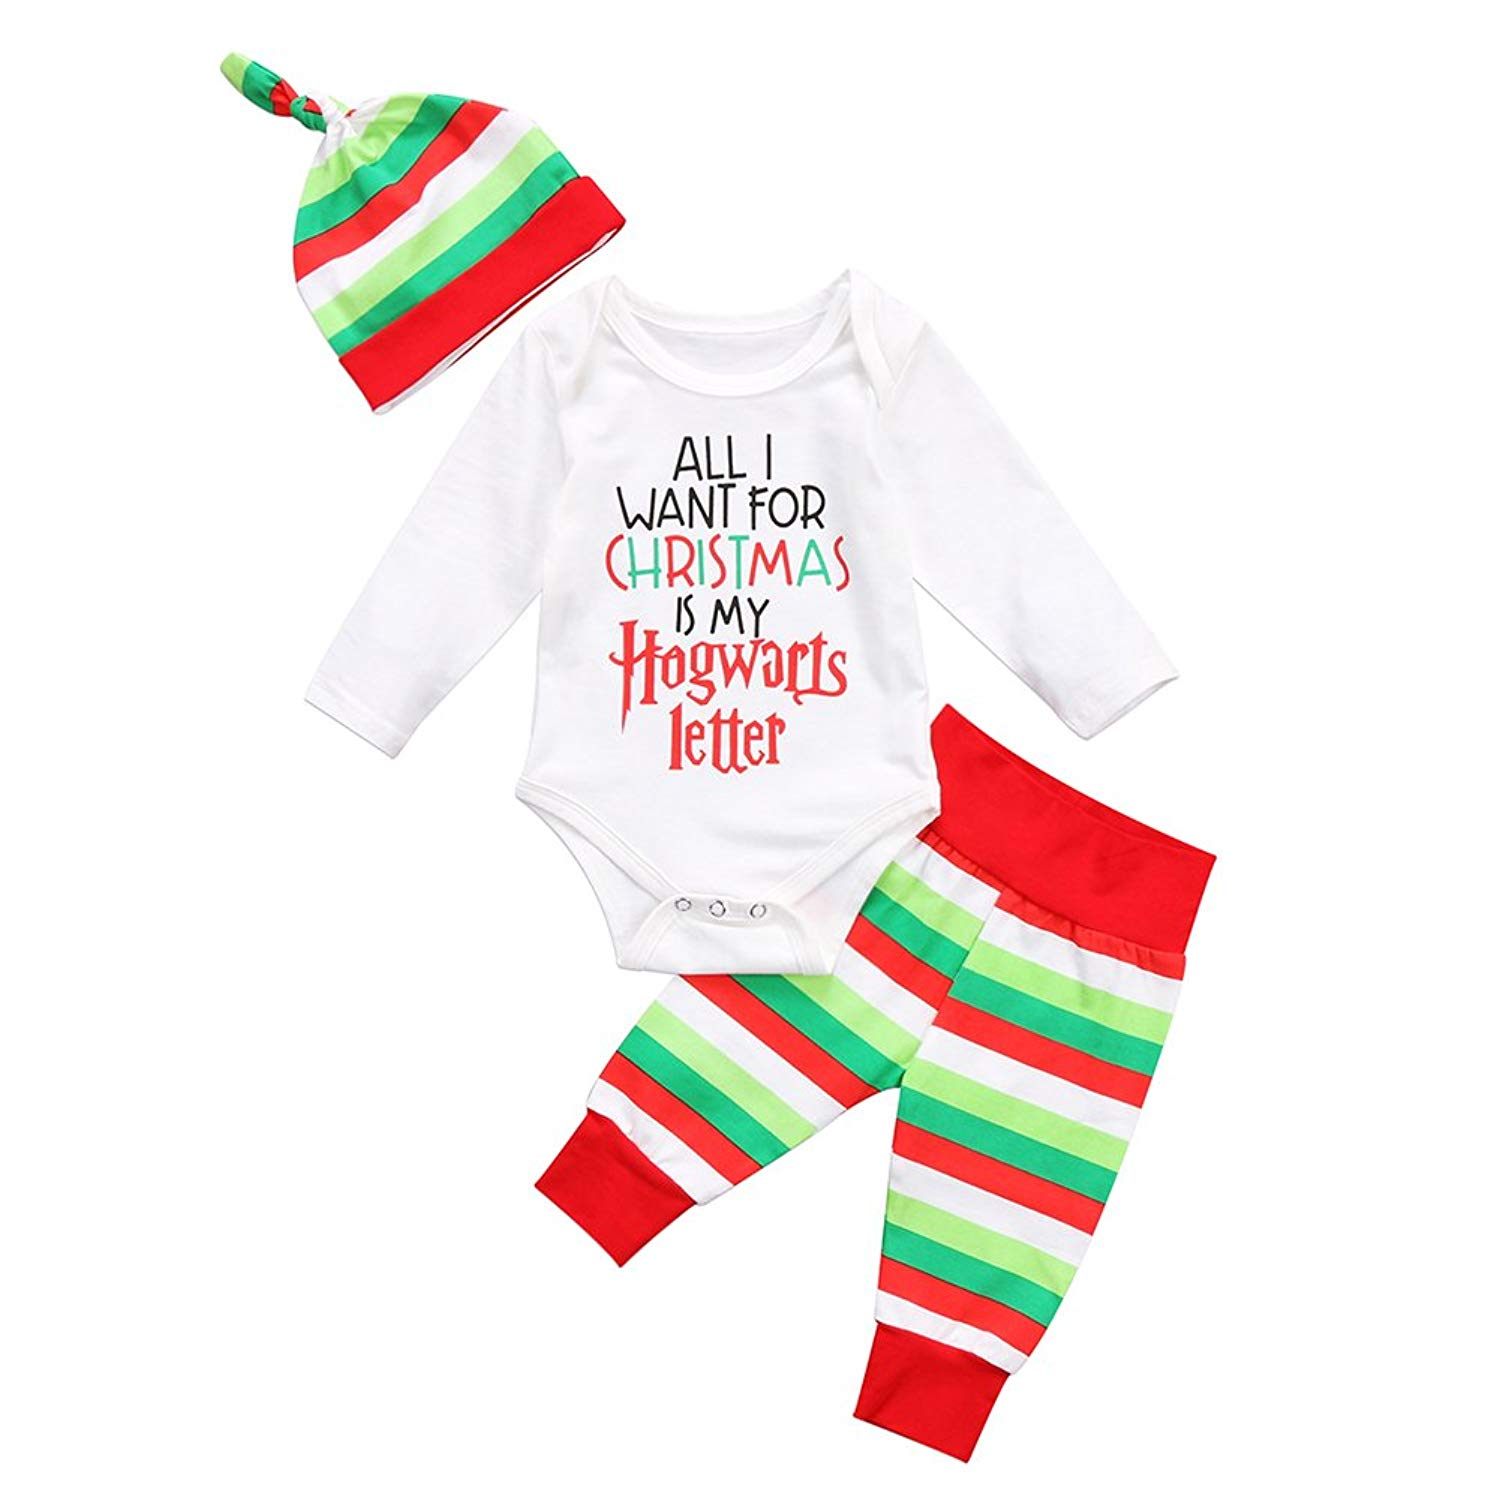 7decb8da1 Get Quotations · Cute Newborn Infant Baby Girl Boy Long Sleeve Christmas  Romper+Striped Pants with Hat Outfit